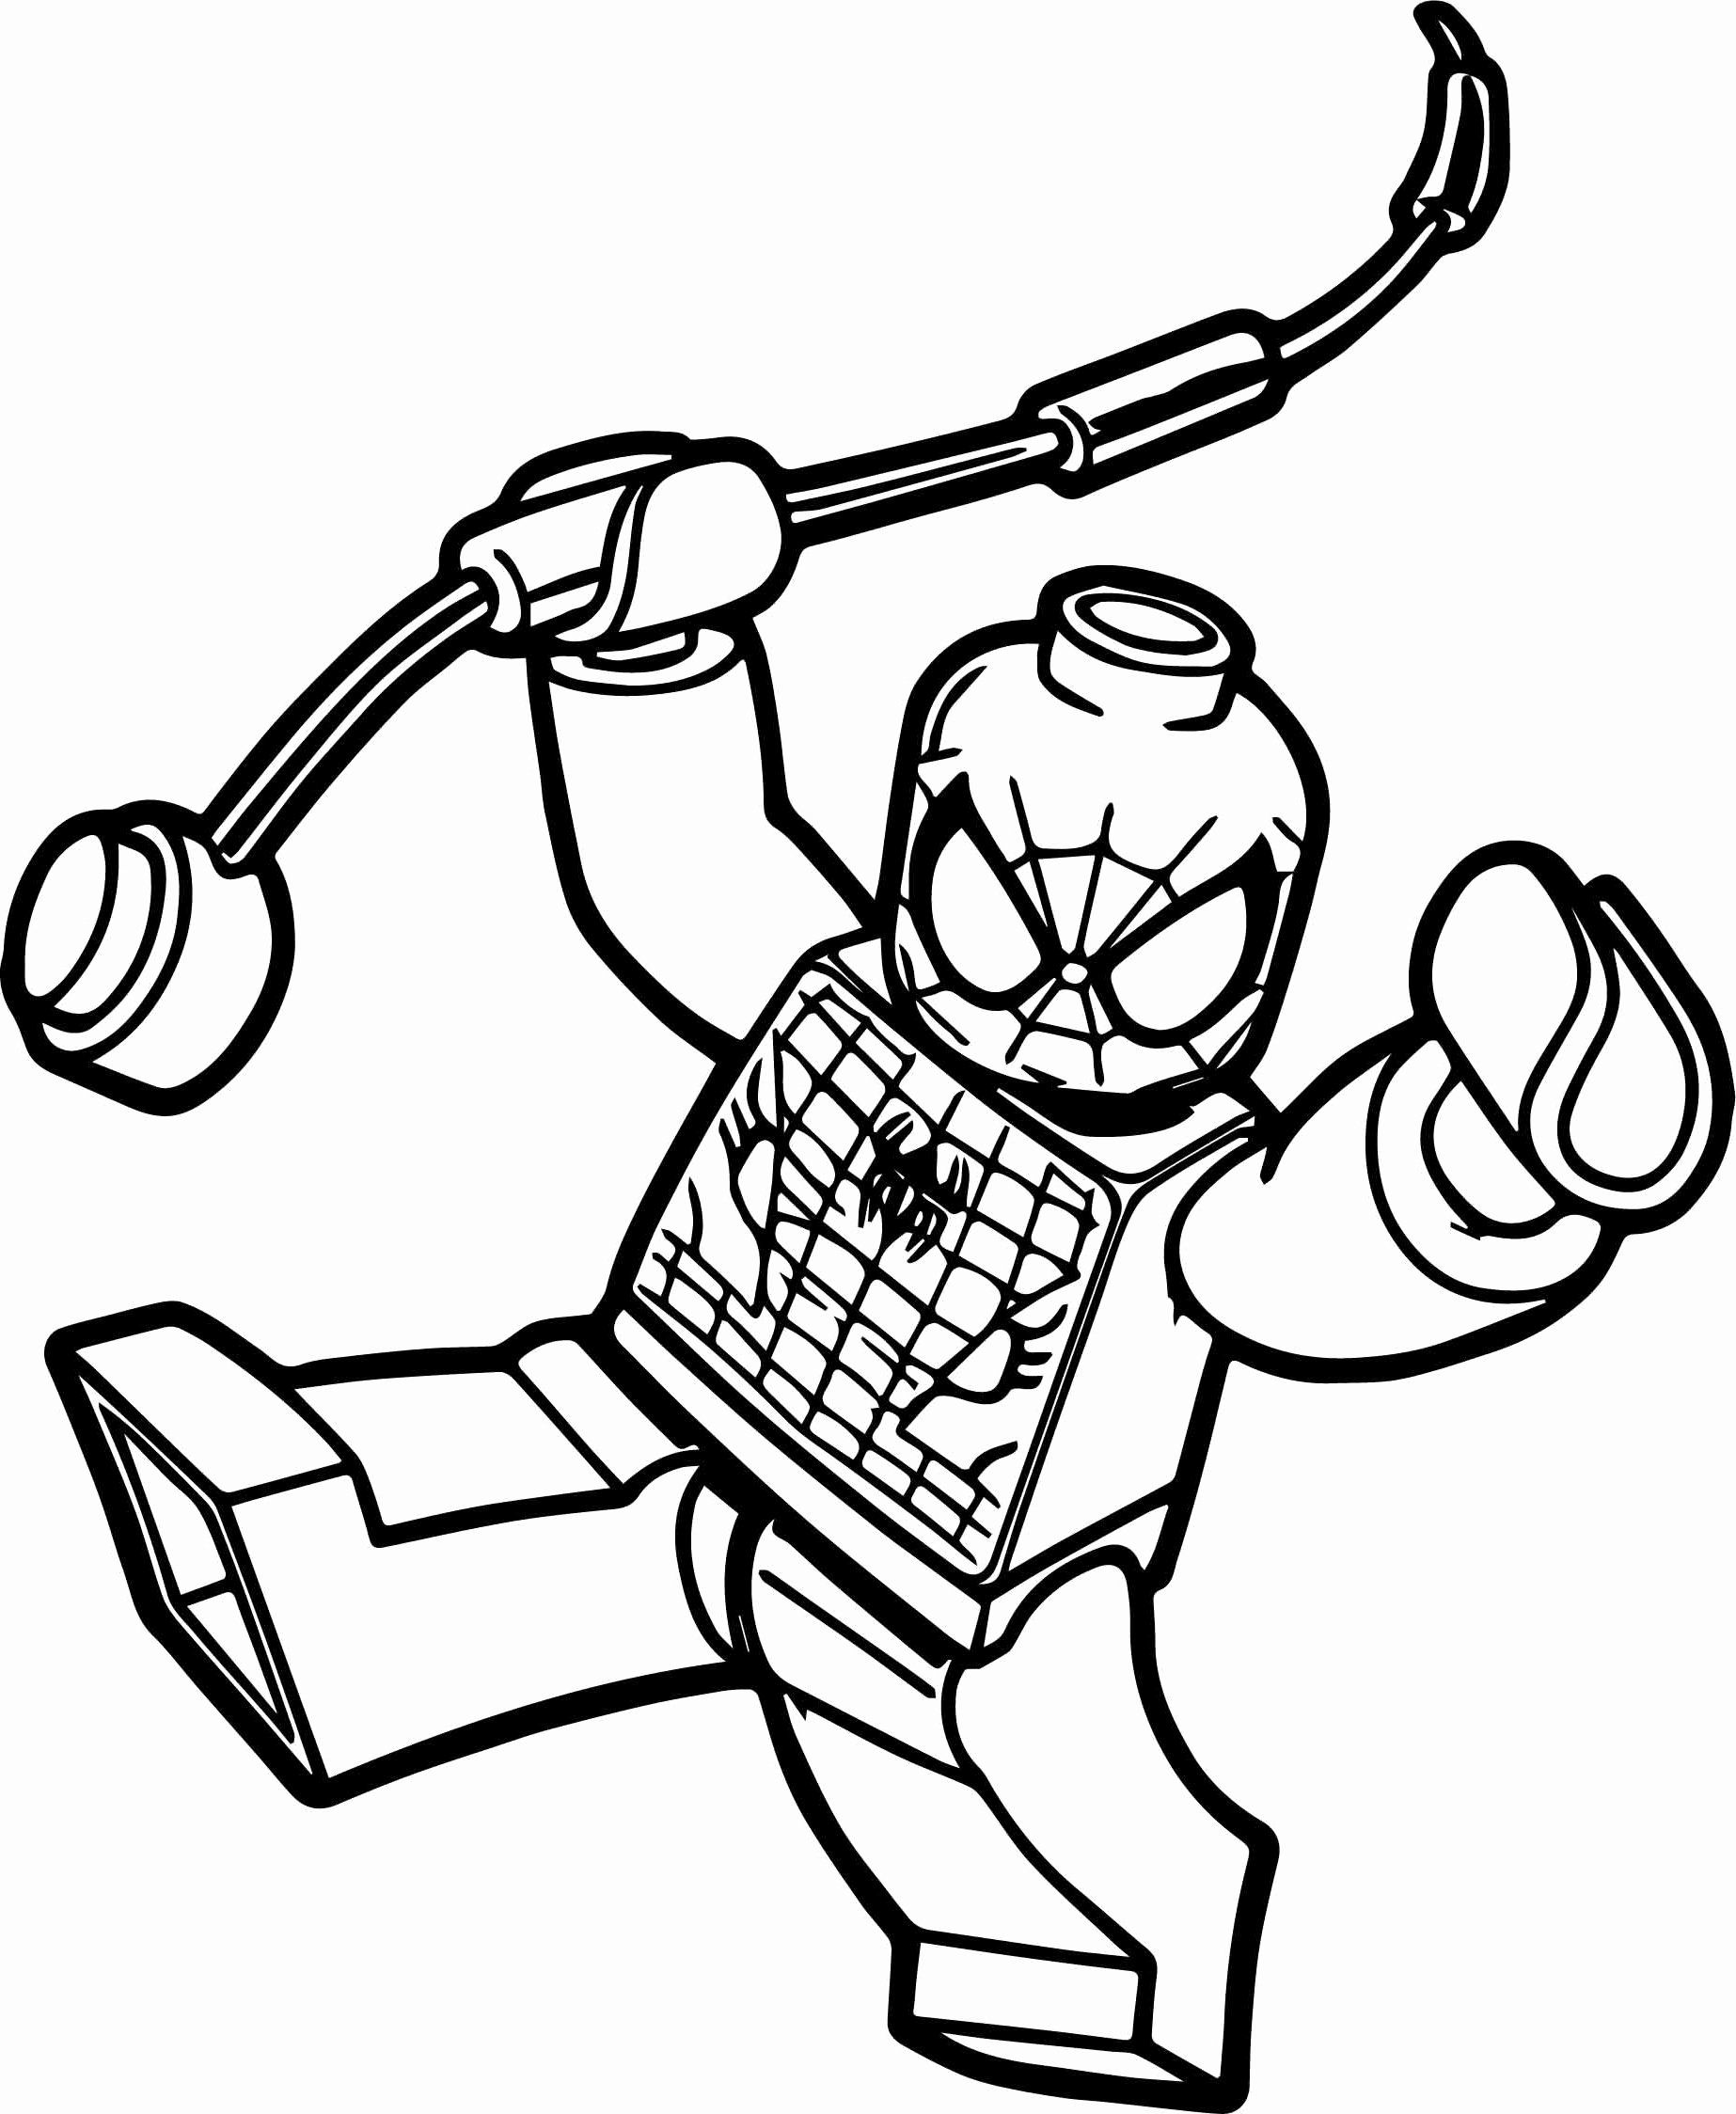 Lego Spiderman Coloring Page Awesome Lego Spiderman Coloring Pages